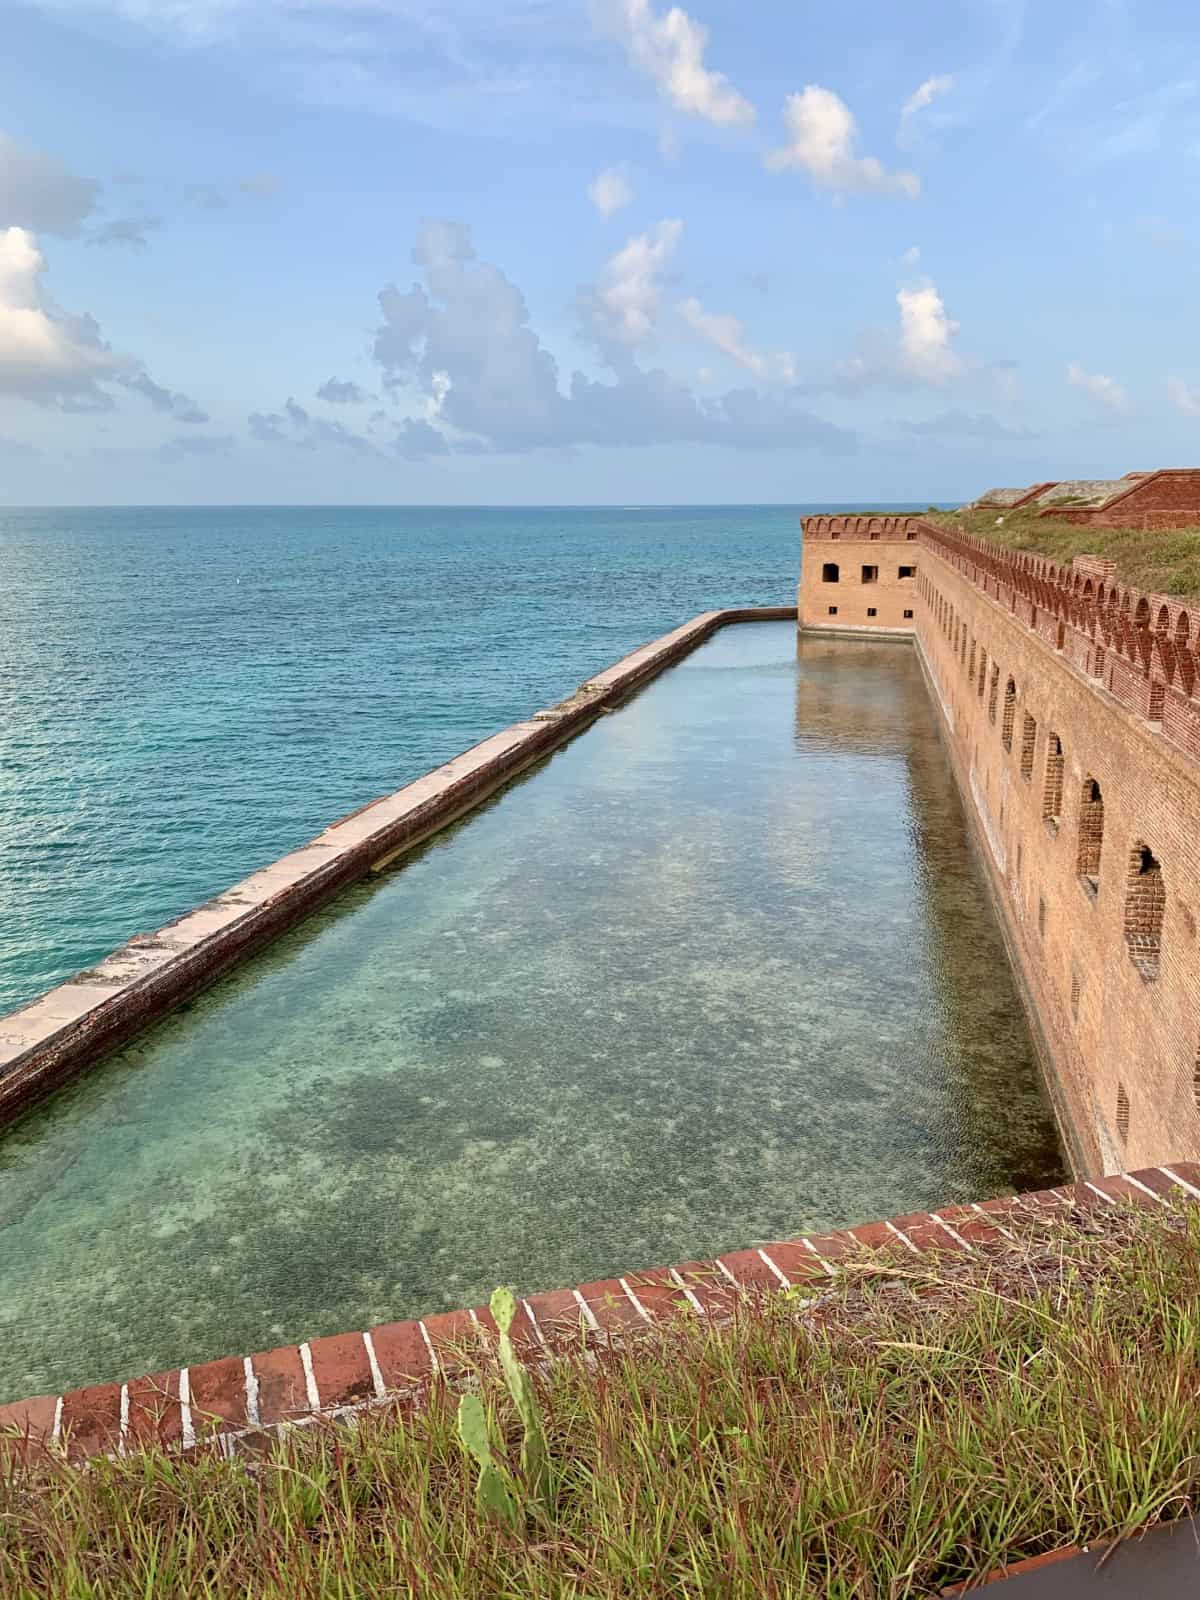 The moat around Fort Jefferson is gorgeous and great for snorkeling